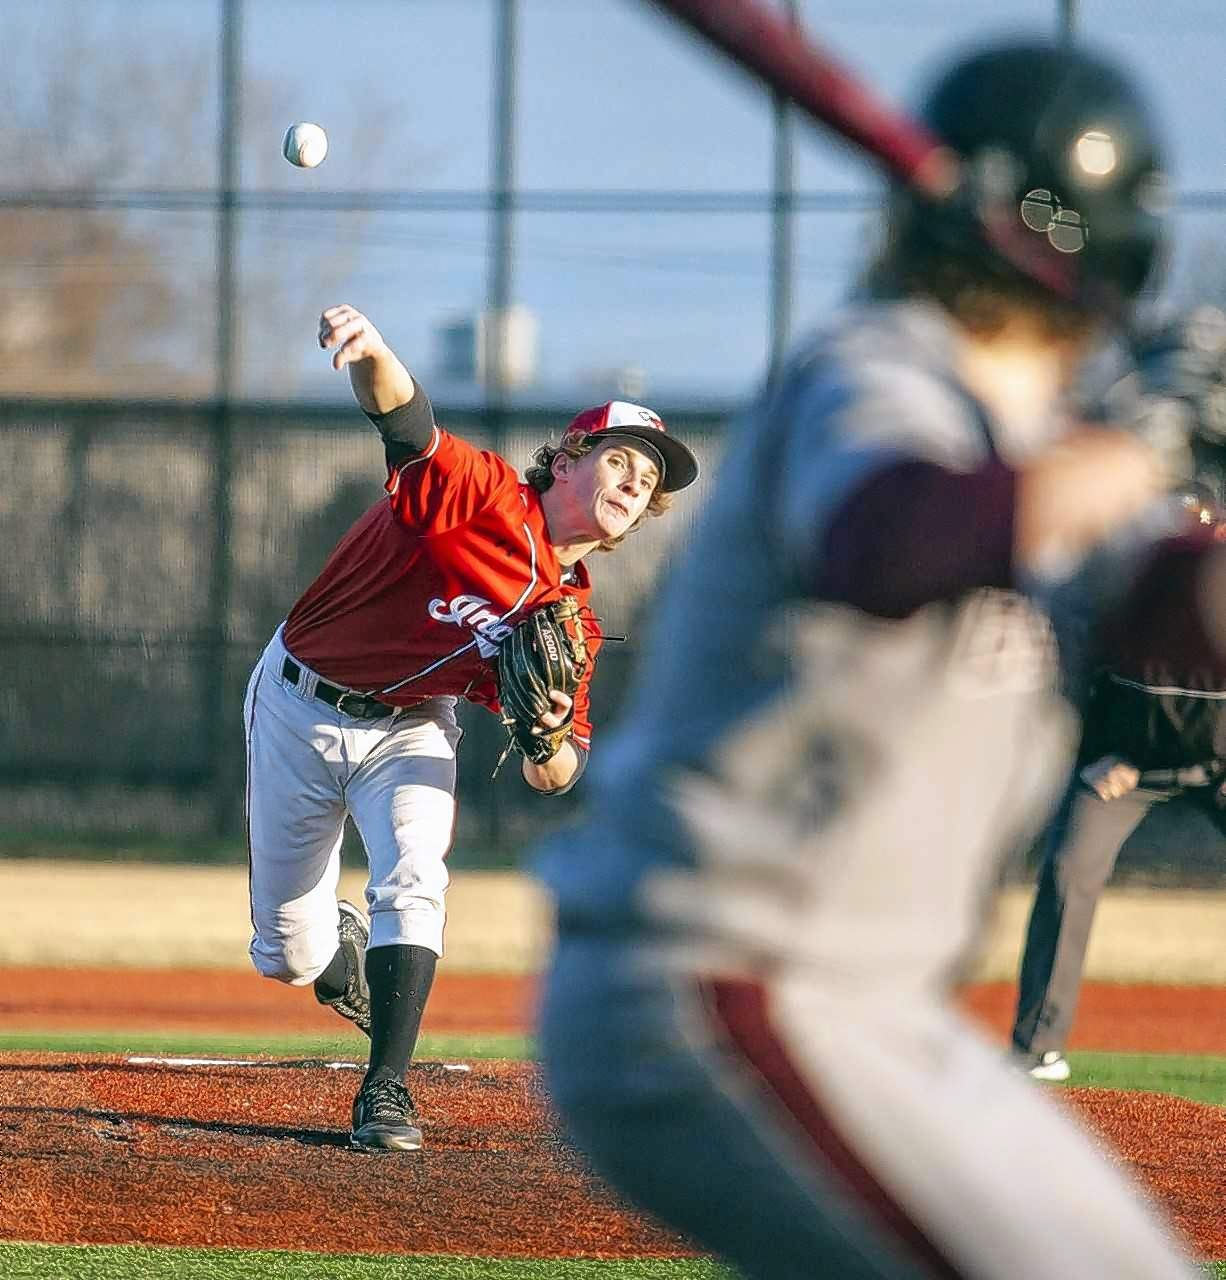 Du Quoin pitcher Brian Winters delivers a pitch in the fifth inning against Benton.